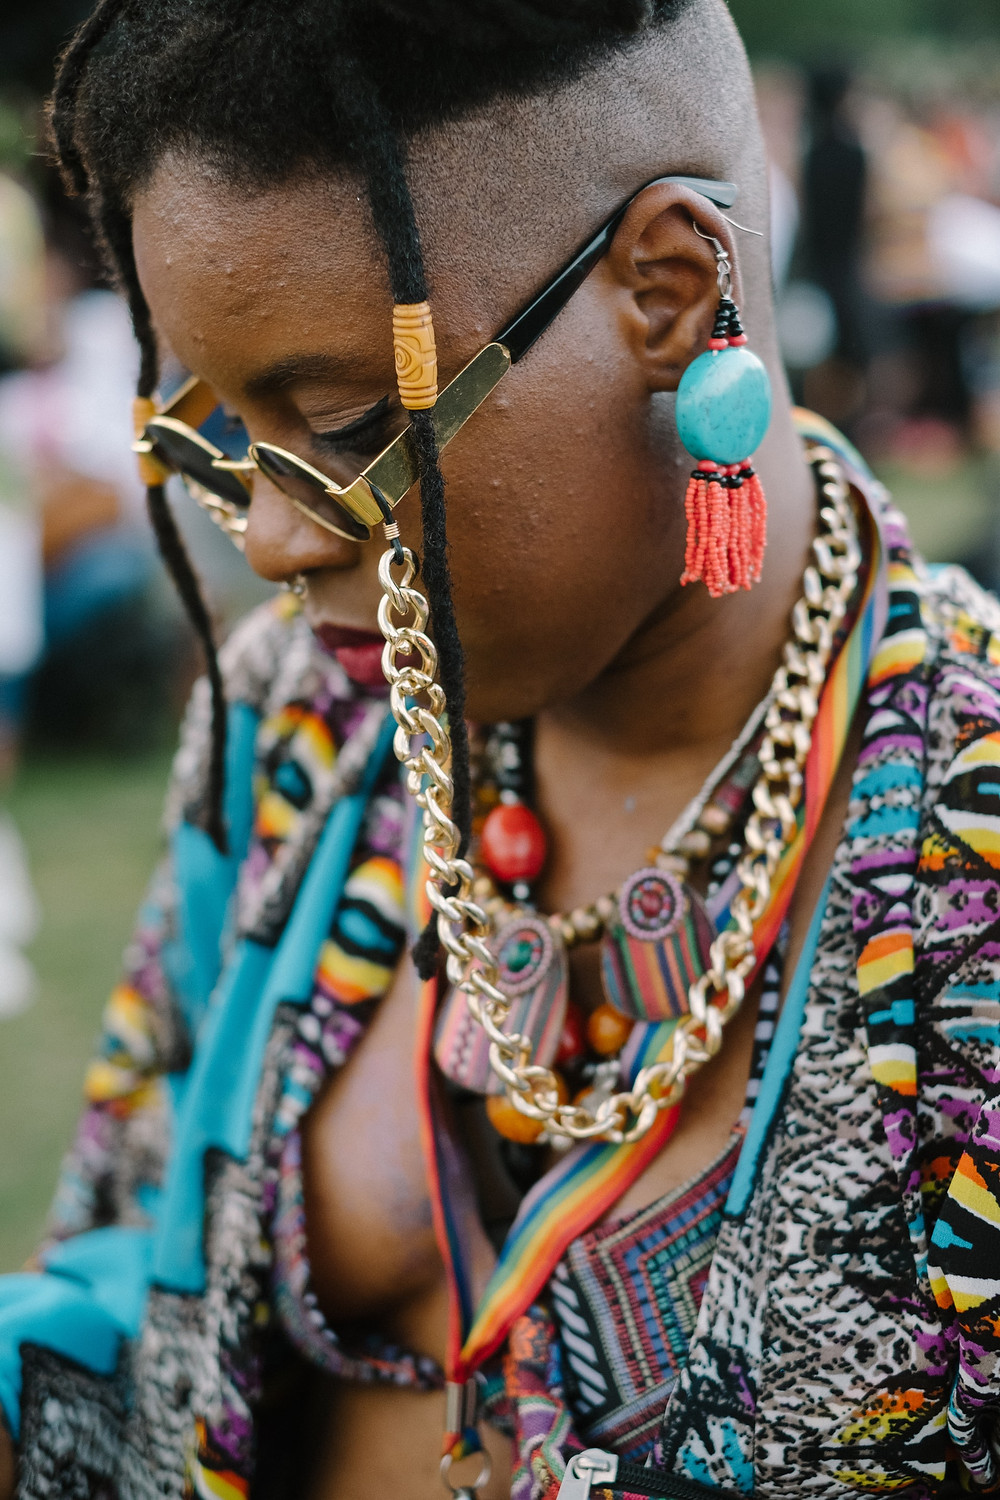 A black woman in close up with multiple pieces of jewellery, necklaces and earrings on. She is wearing sunglasses which are attached to large gold chains that go around her neck. She is wearing a multicoloured shirt and has two dreadlocks and a shaved head.